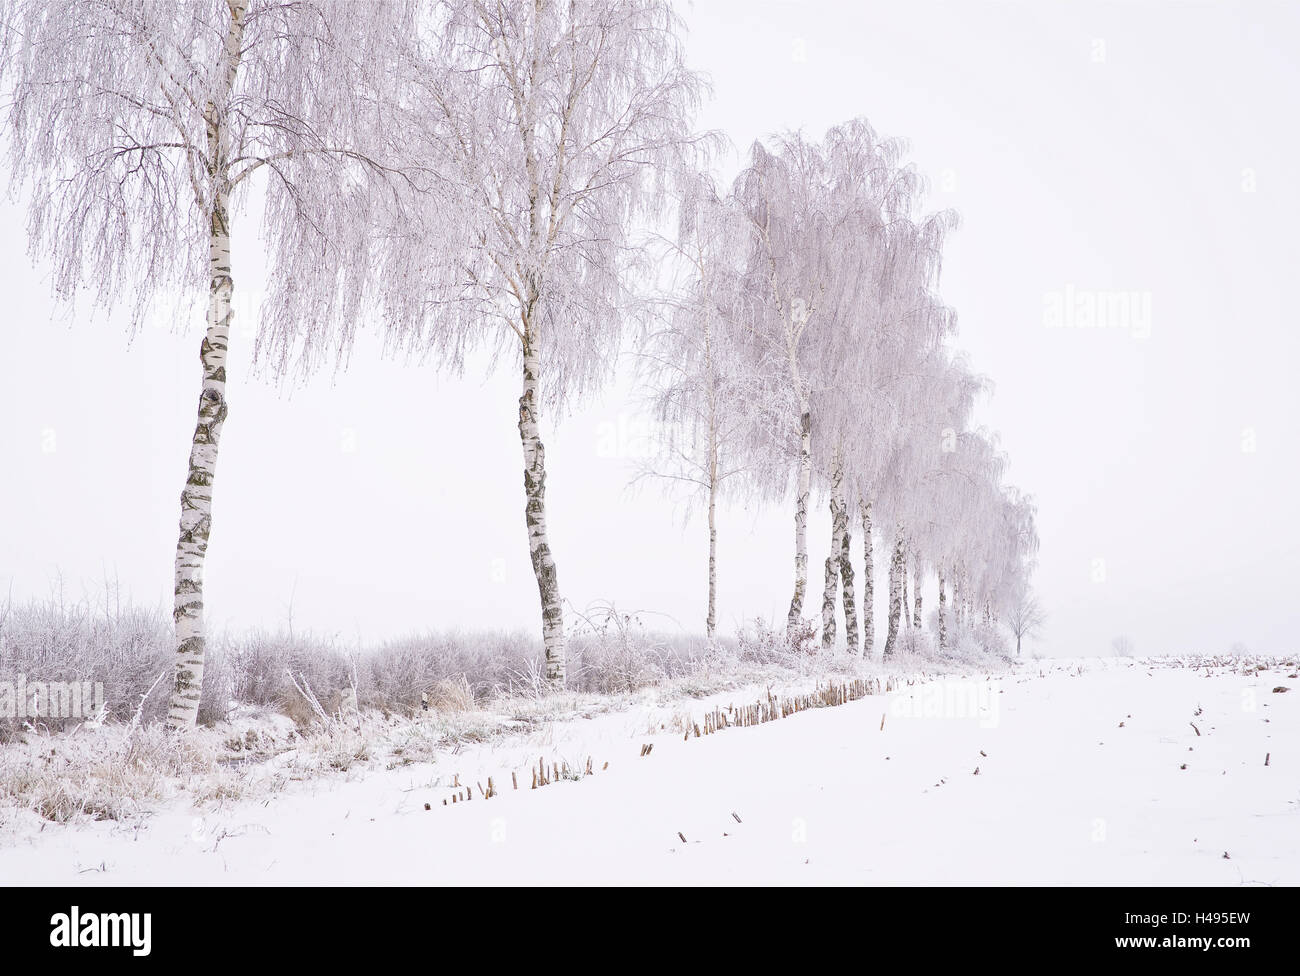 Birch trees in a row, winter, - Stock Image